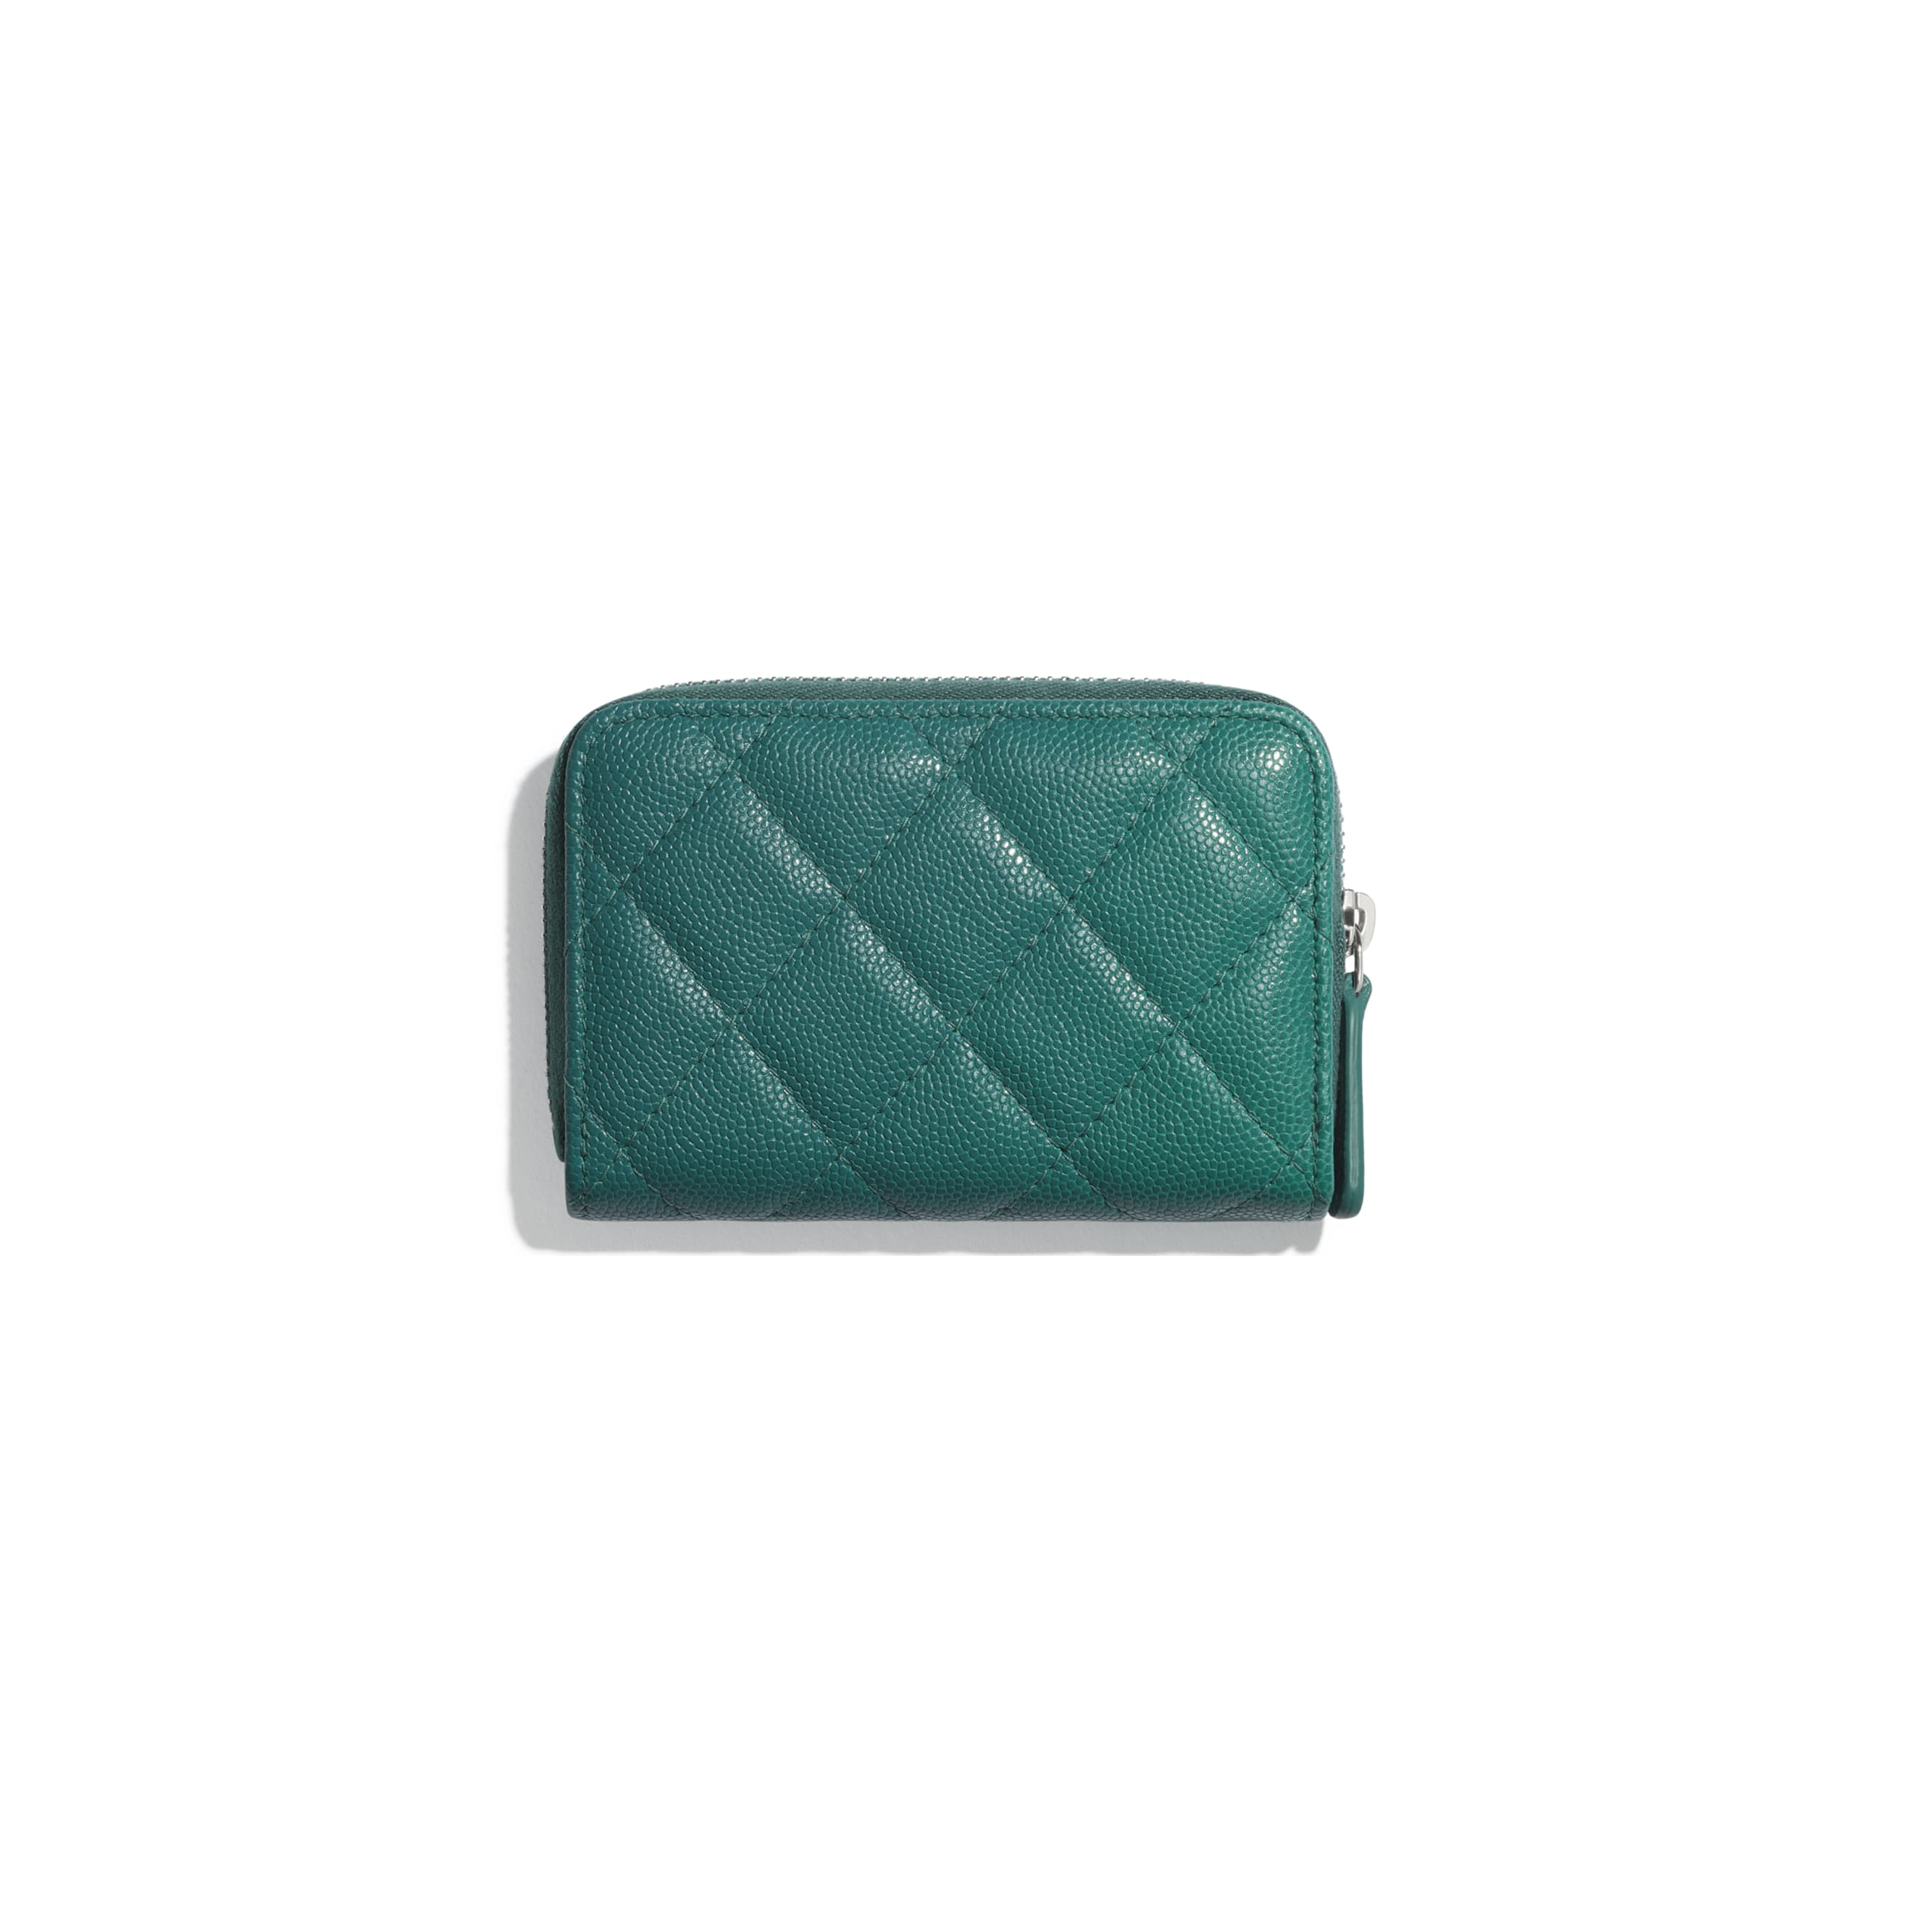 Zipped Coin Purse - Green & Pink - Grained Calfskin, Fabric & Silver-Tone Metal - CHANEL - Alternative view - see standard sized version